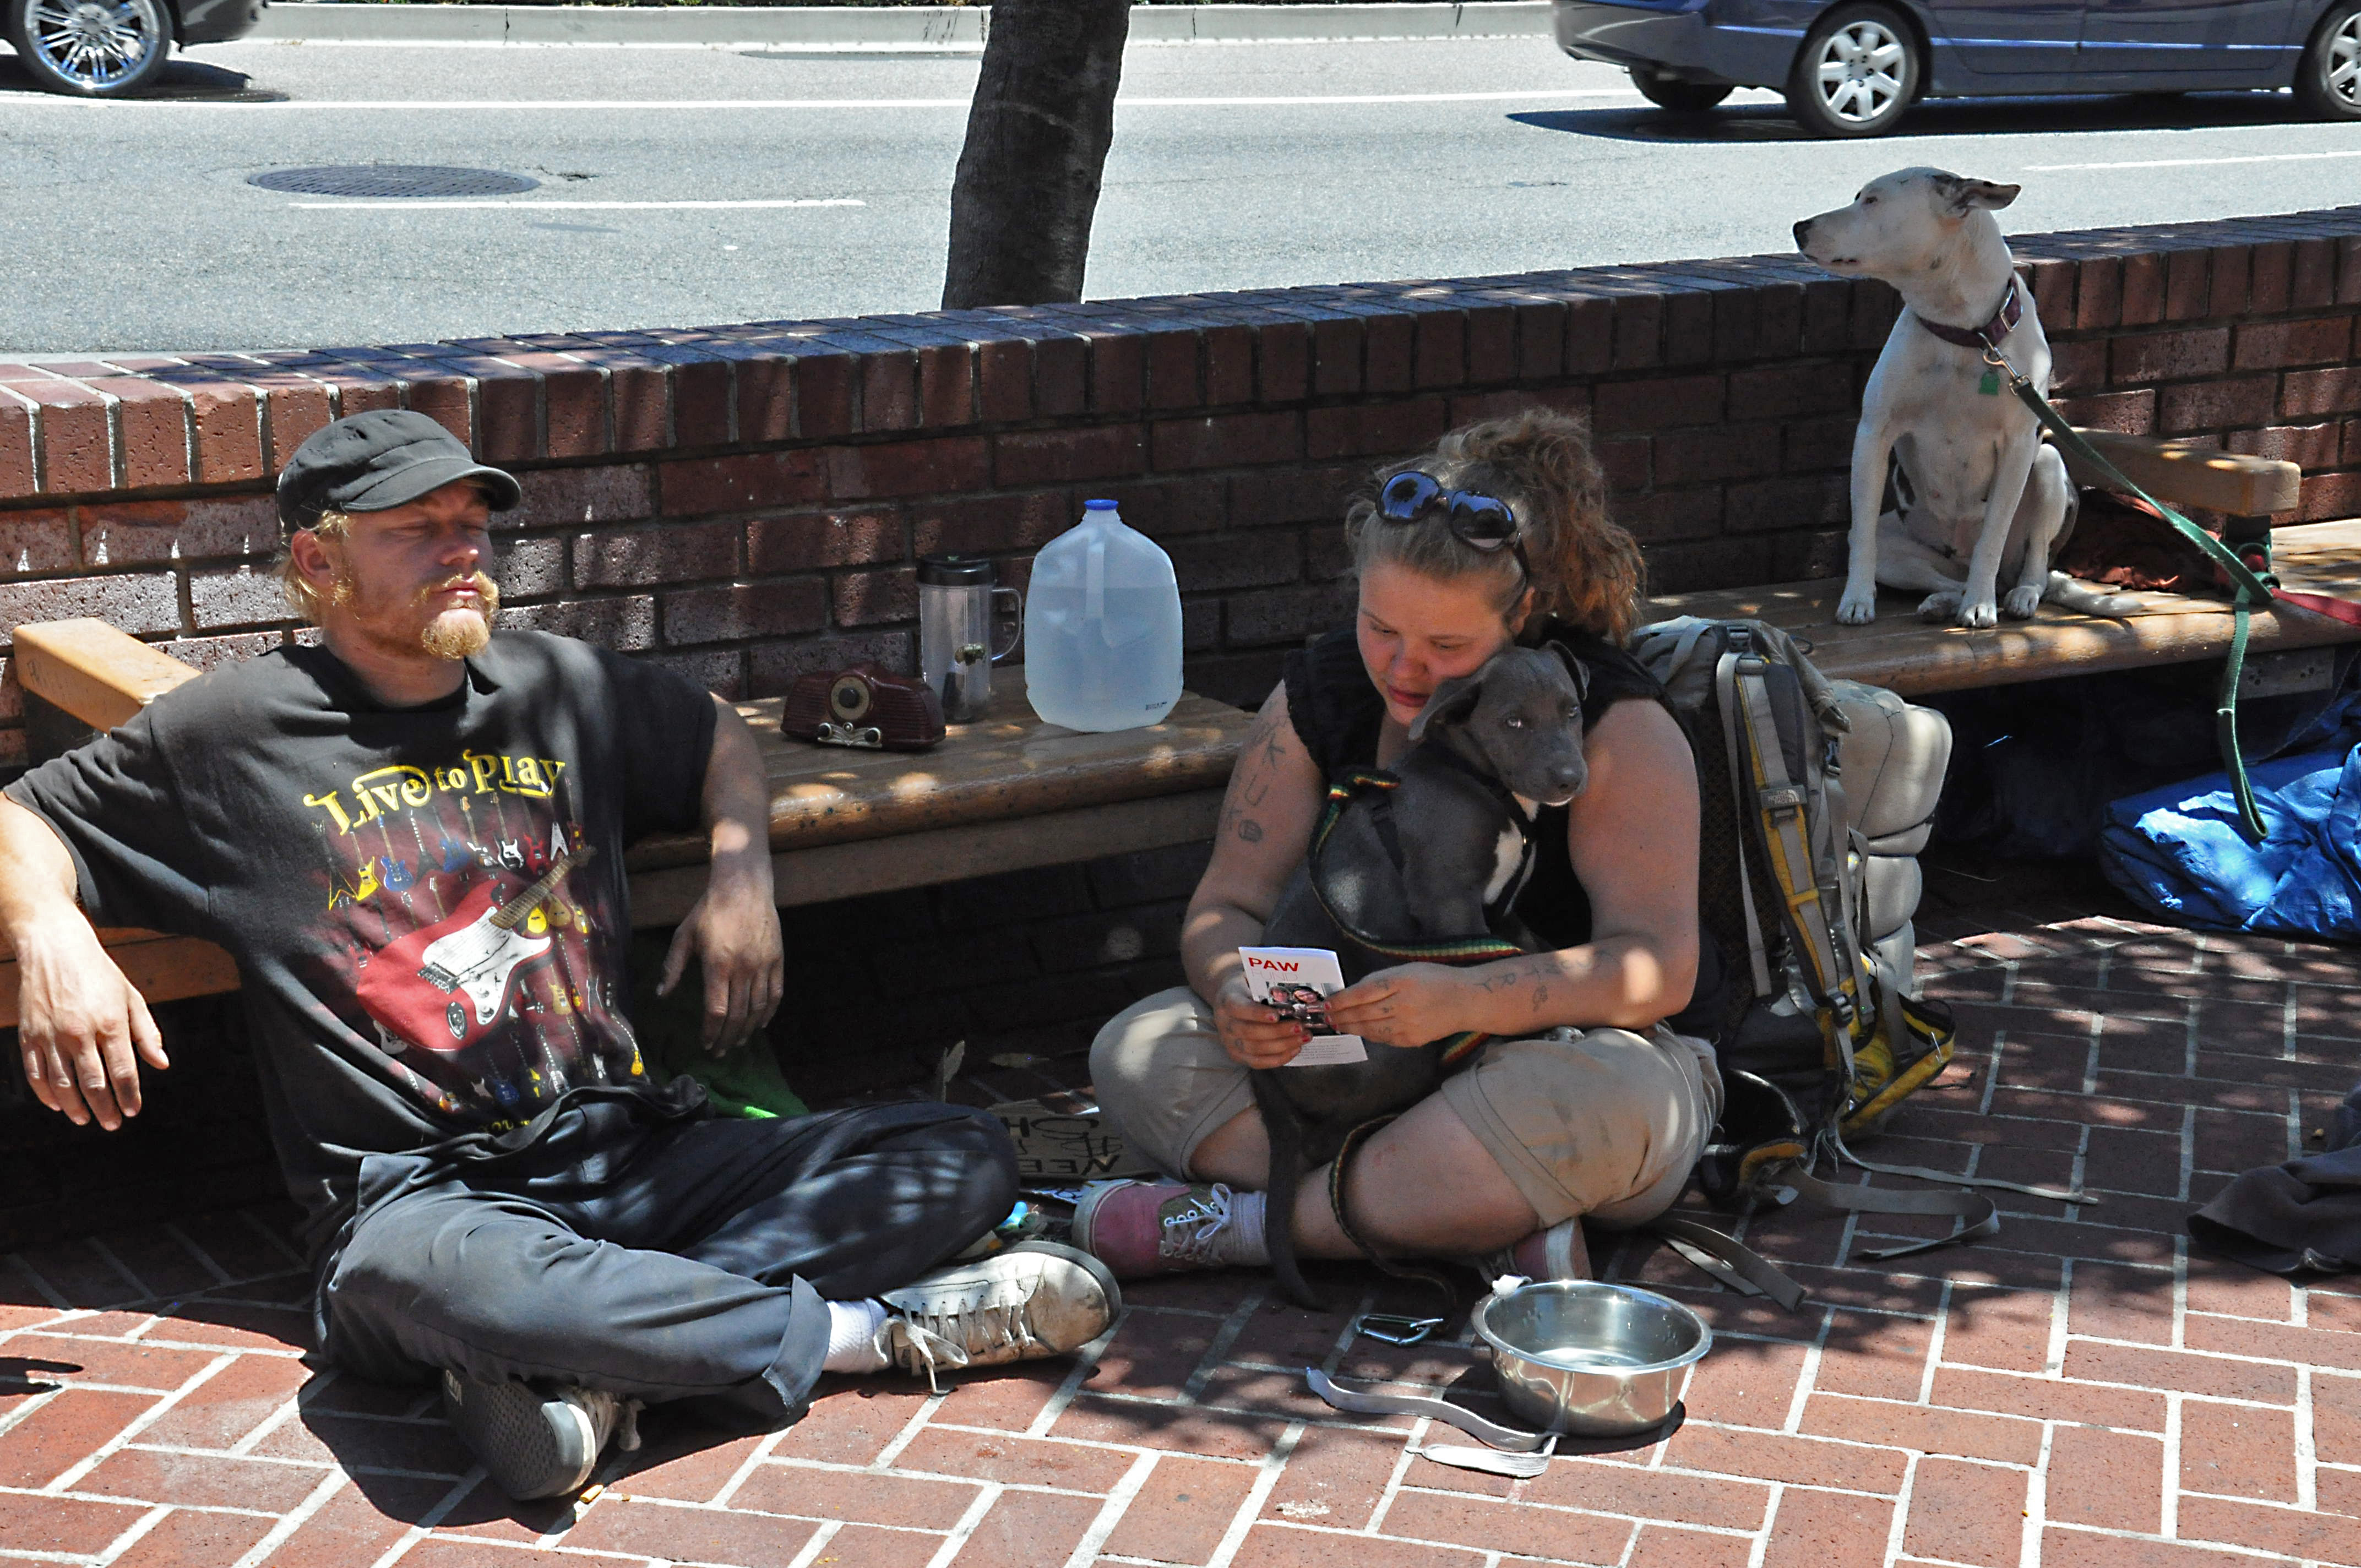 u s being young and homeless could get even worse inter press amber and a friend sit on shattuck avenue in downtown berkeley where homeless people be targeted for fines credit judith scherr ips